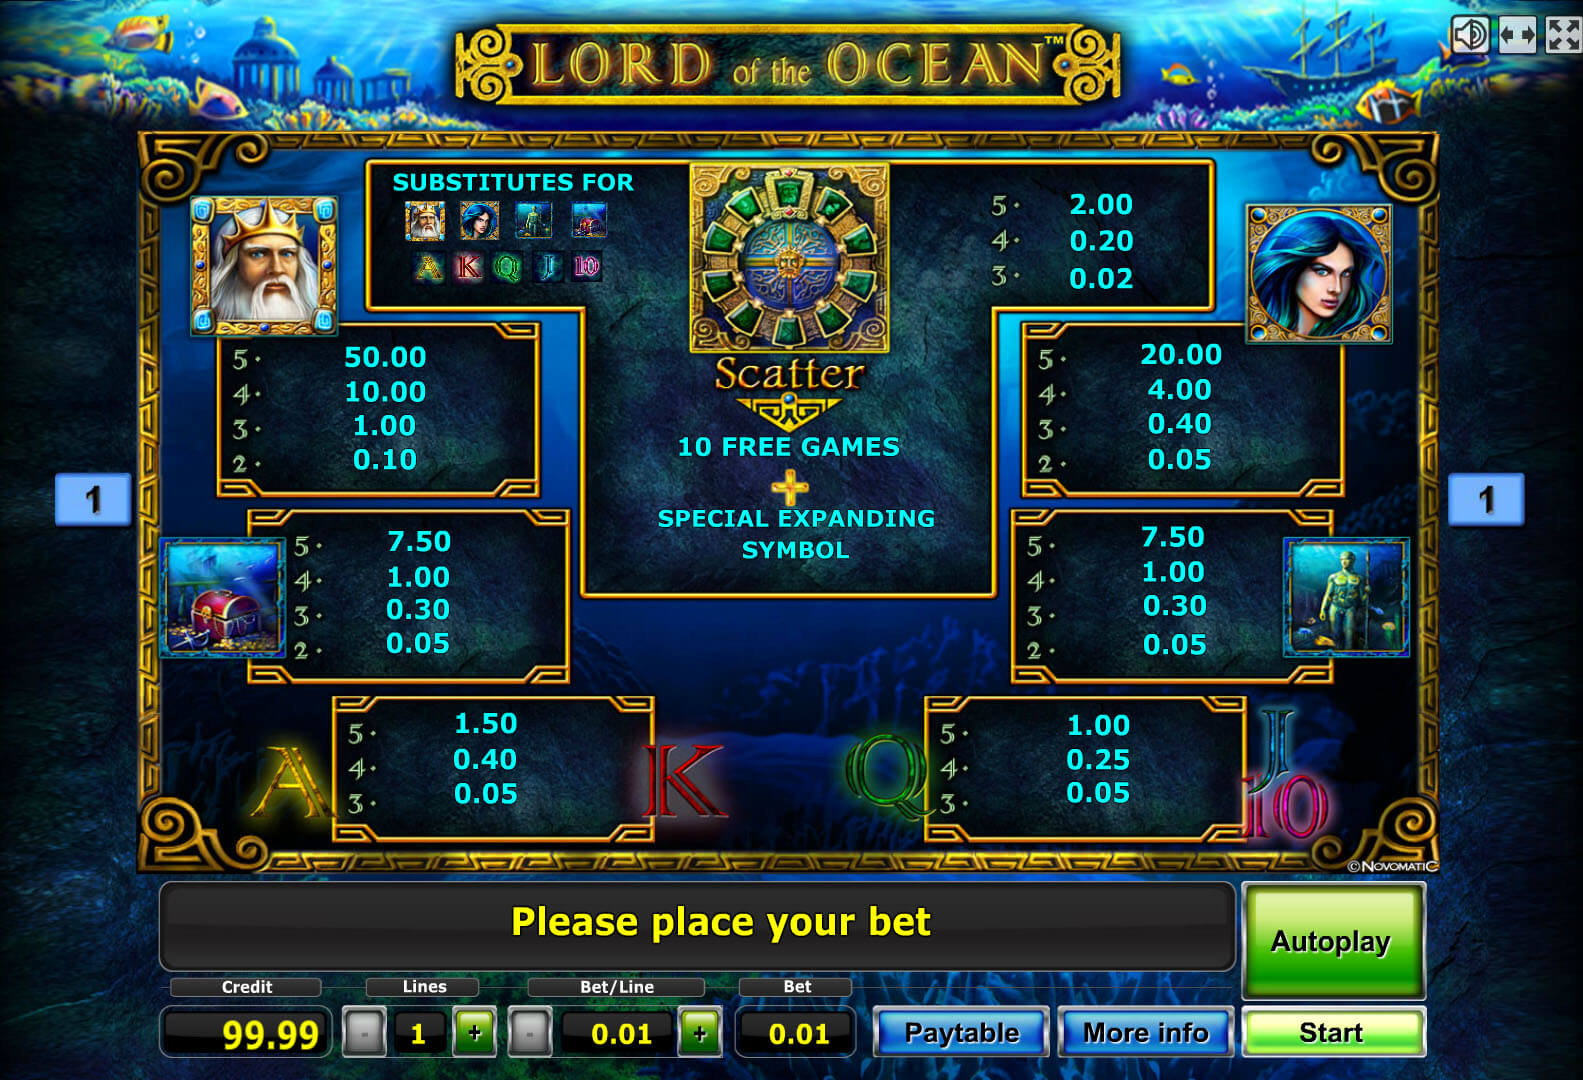 Lord of the Ocean игровой автомат онлайн информация